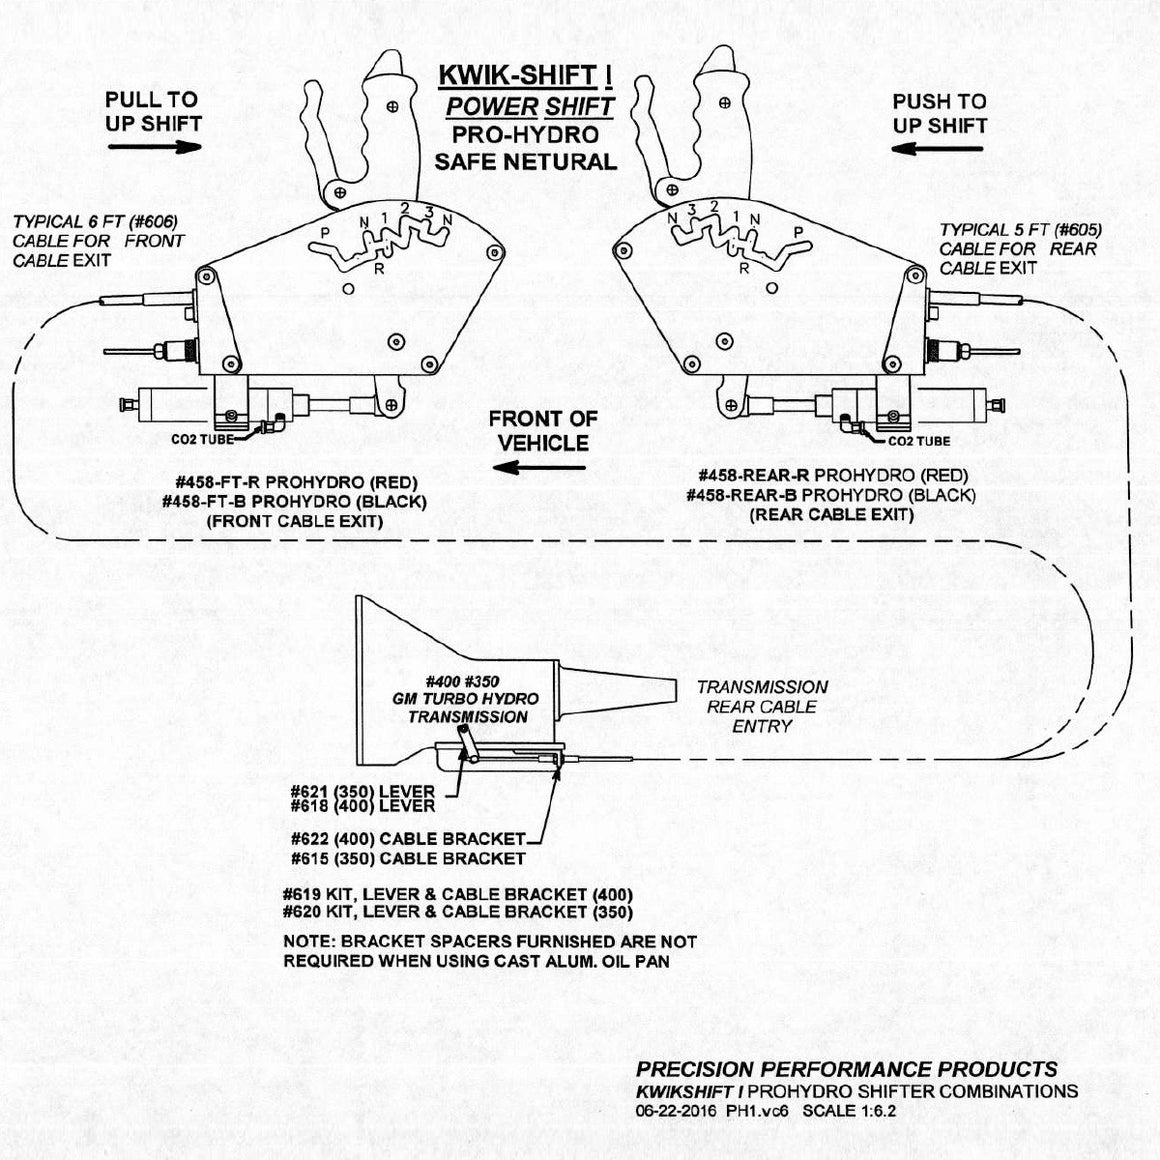 3speed diagram_580x@2x?v=1492194931 precision performance kwikshift 1 air shifter th400 3 spd reverse Von Duprin Replacement Parts at bayanpartner.co